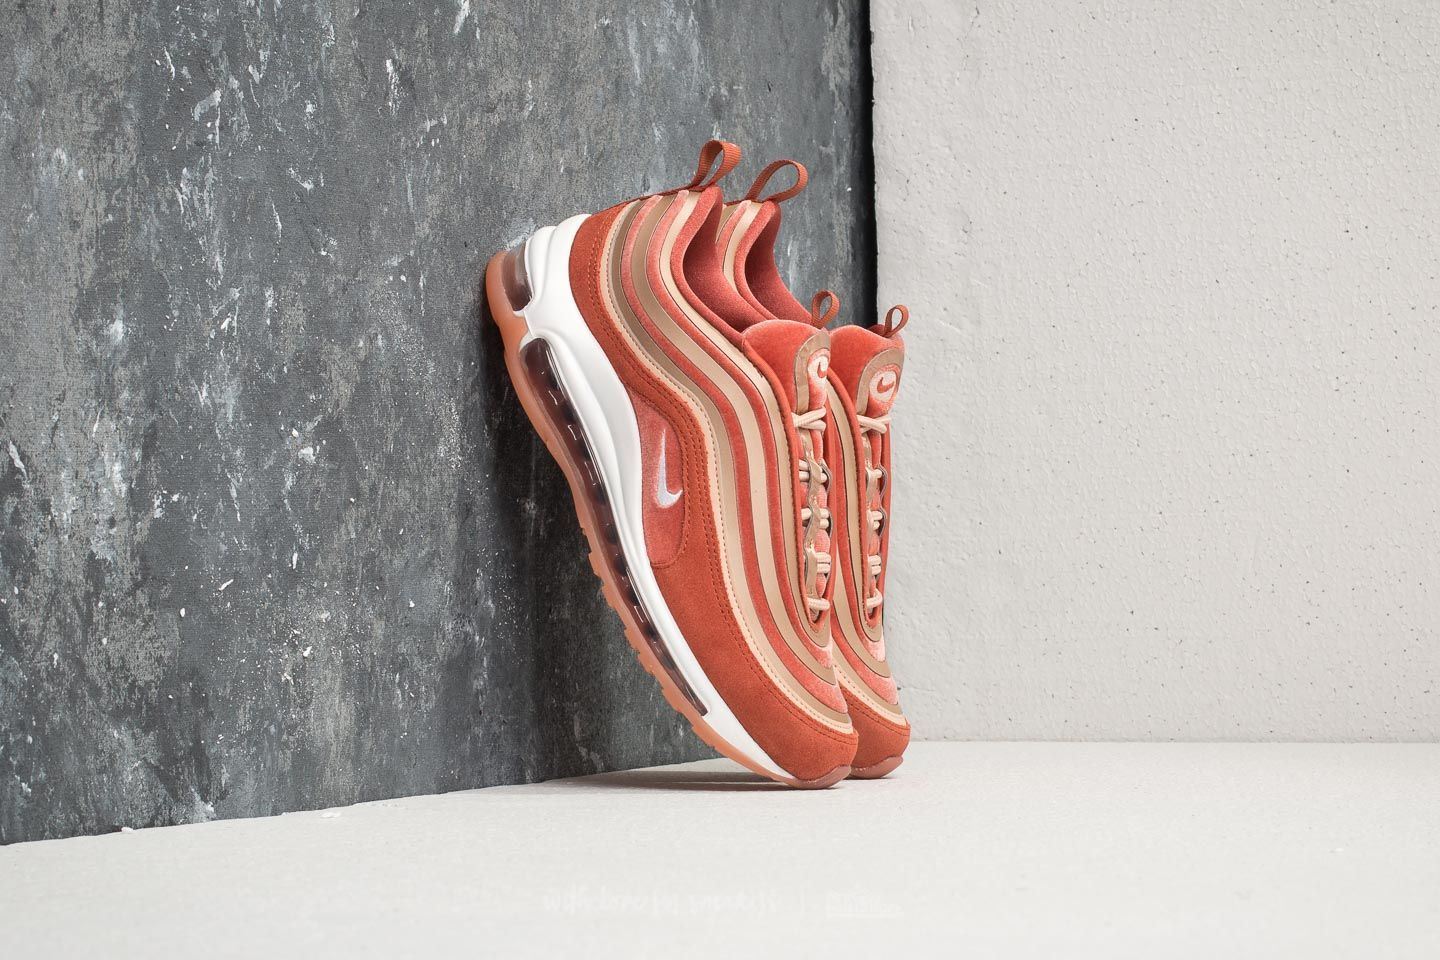 competitive price 42d85 e4676 Nike W Air Max 97 UL '17 LX Dusty Peach/ Summit White | Footshop